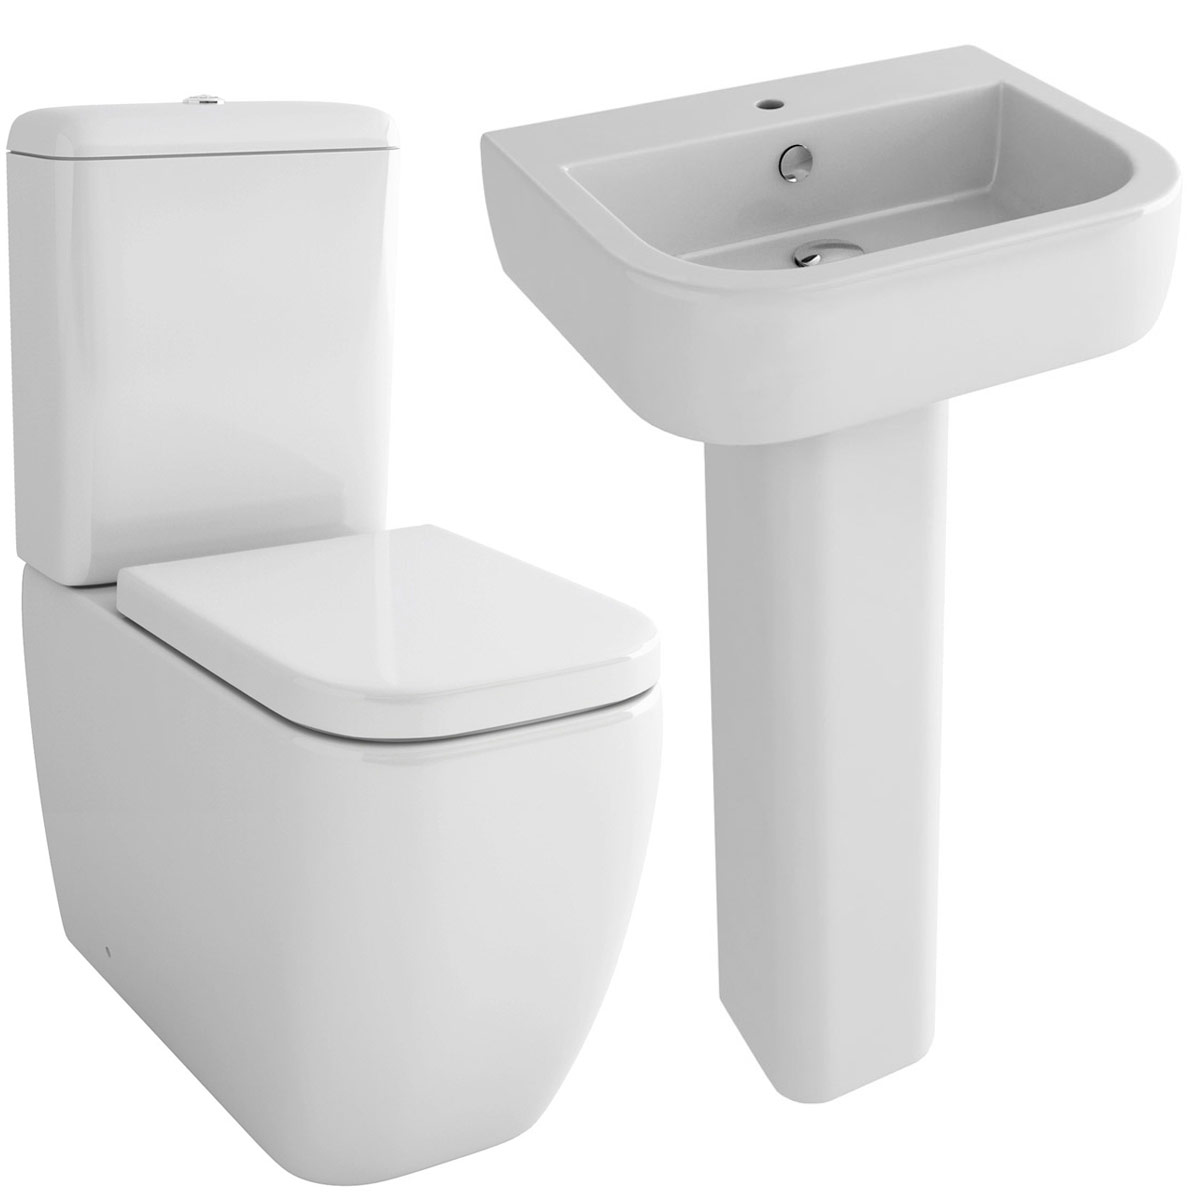 Basin & Toilet Packages